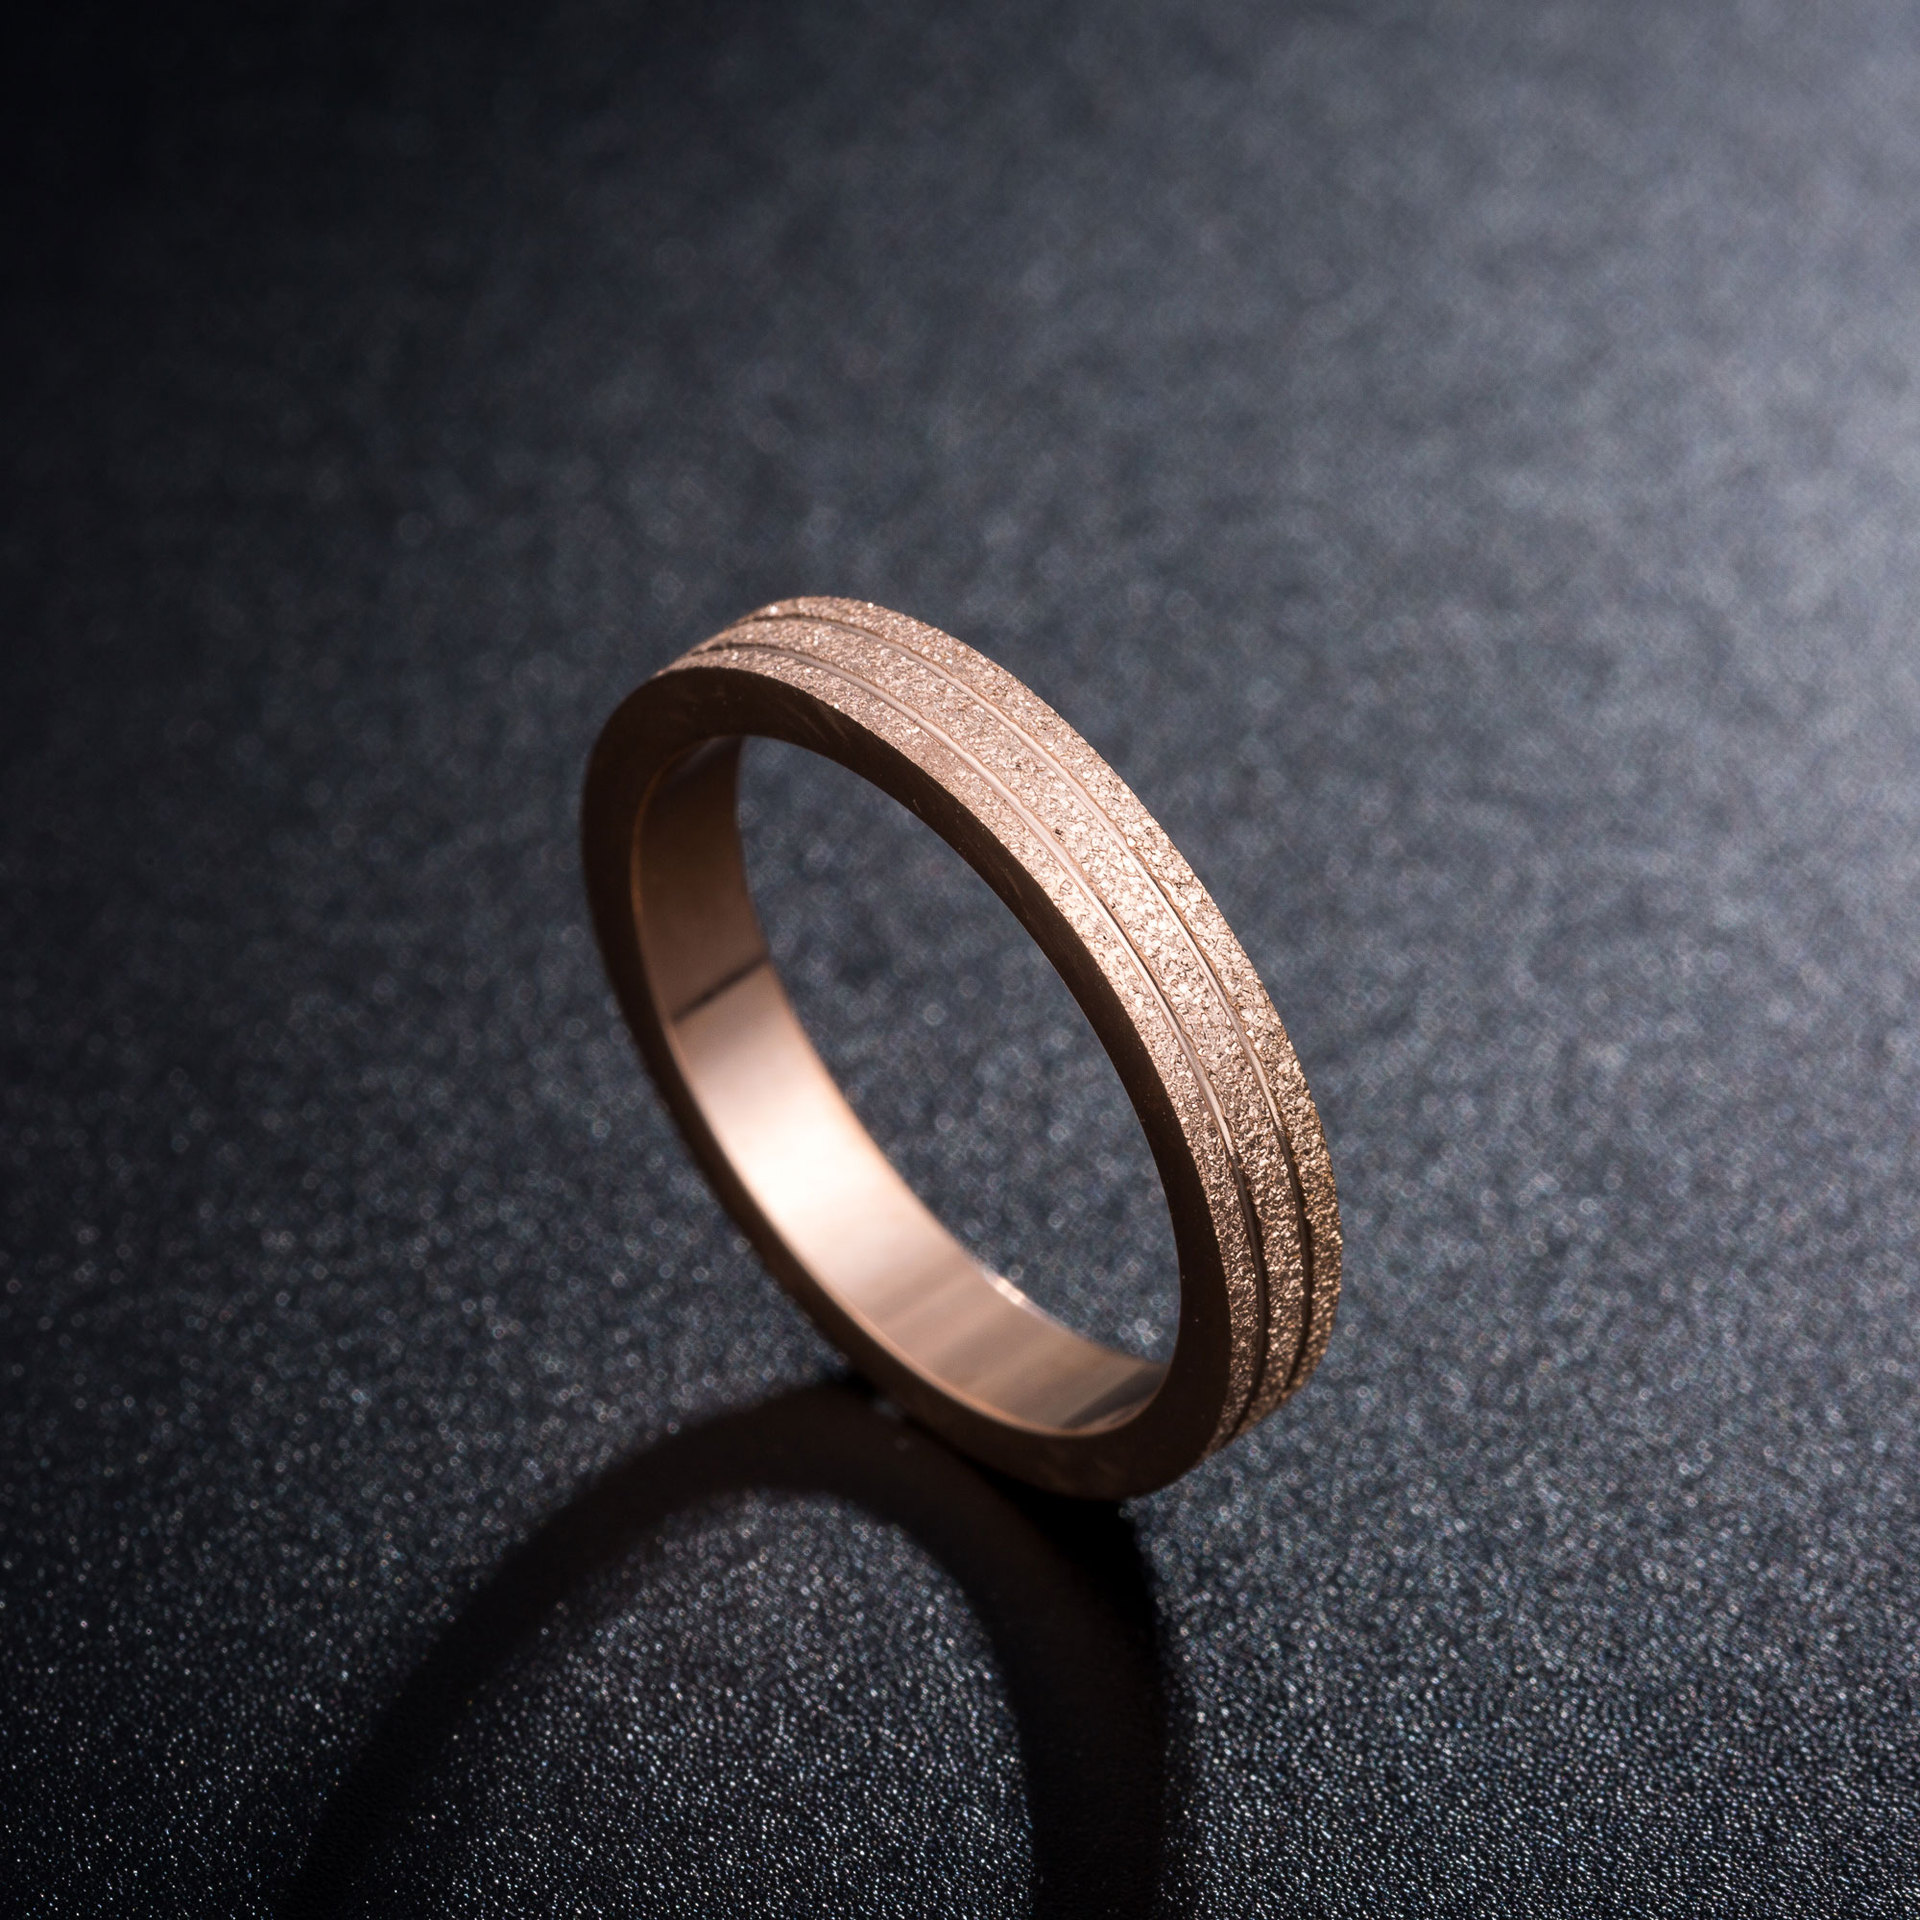 KNOCK  Top Quality Rose Gold Color Frosted Ring for Woman Girl Gift  316 L Stainless Steel Ring Never Fade  Jewelry 2